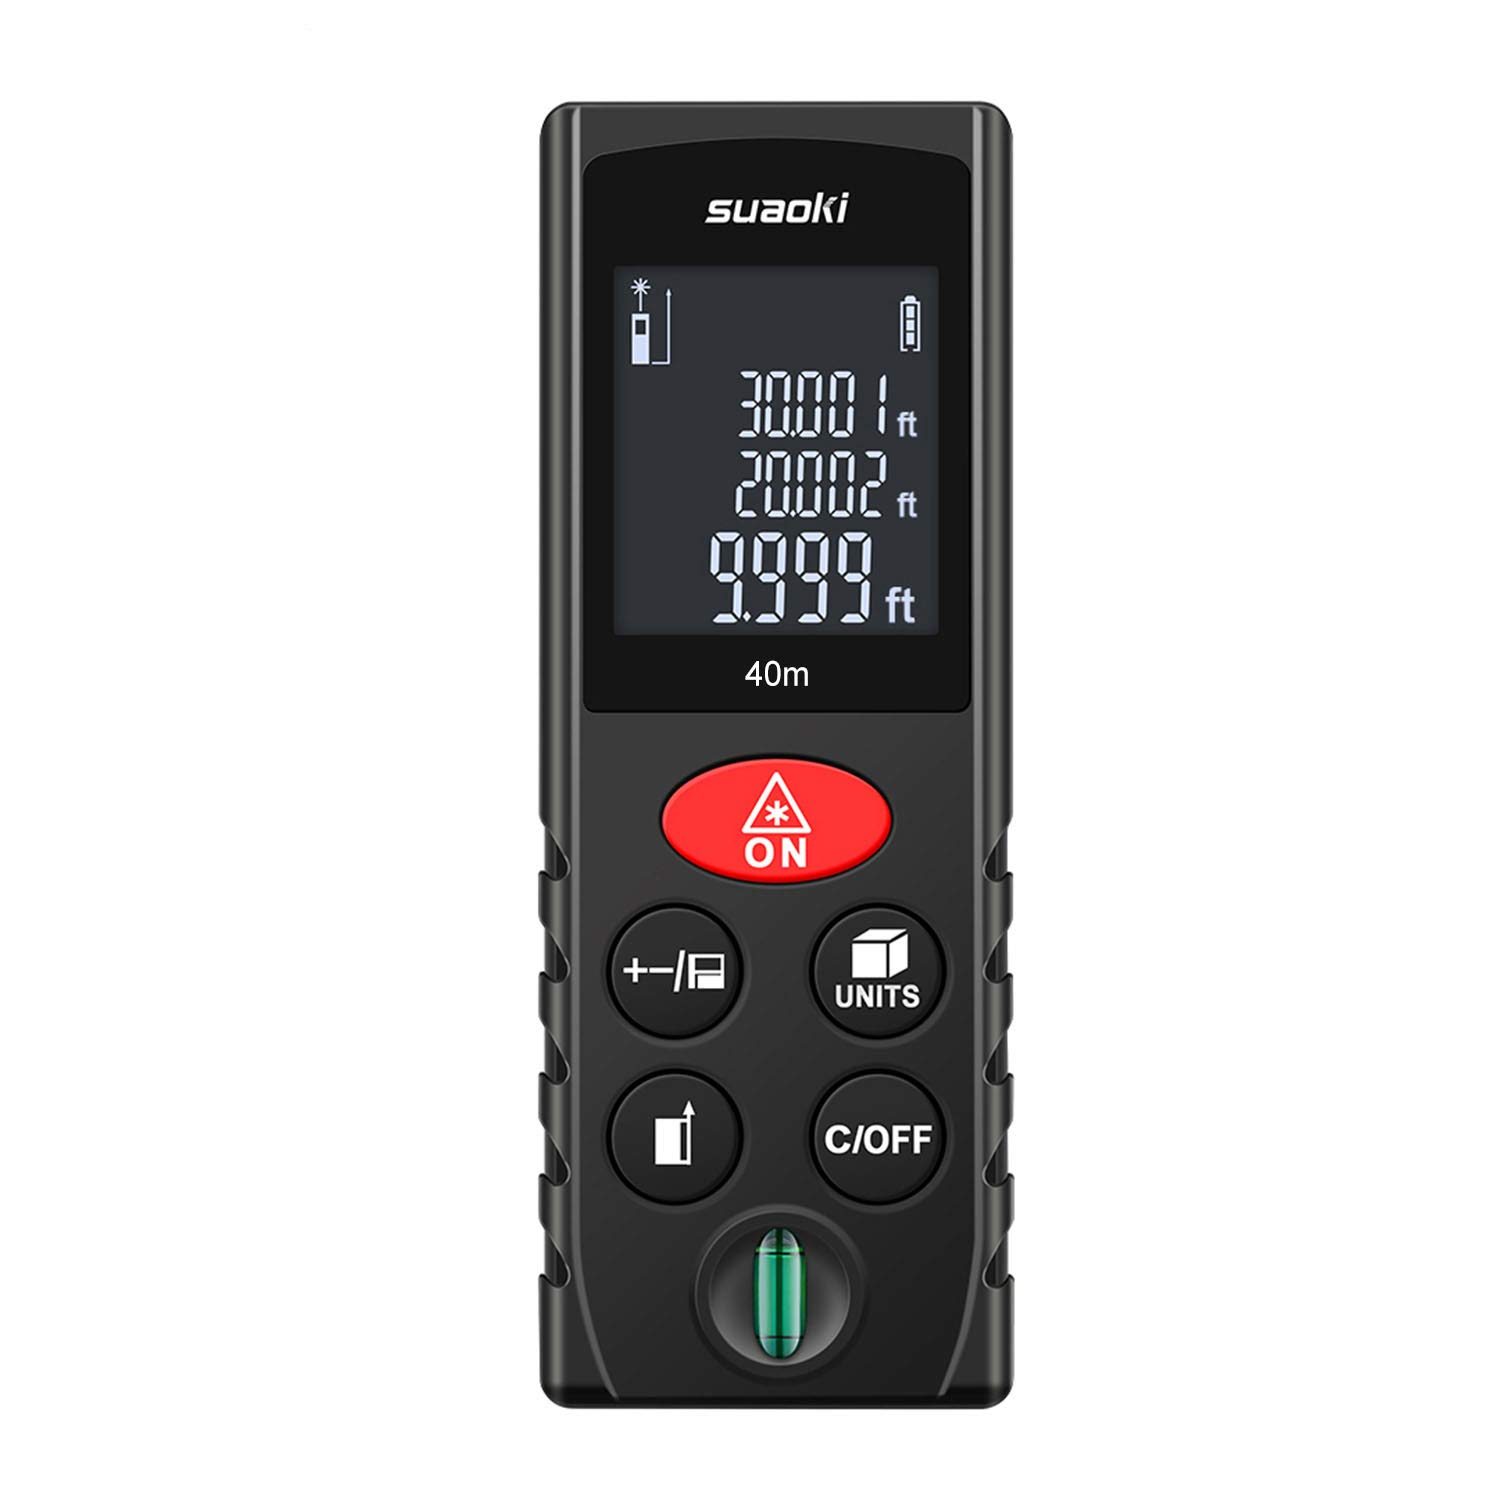 Suaoki Laser Distance Meter D40 40m Digital Measure with Bubble Level Pythagorean Mode Area Volume Calculation Memory Function with Batteries